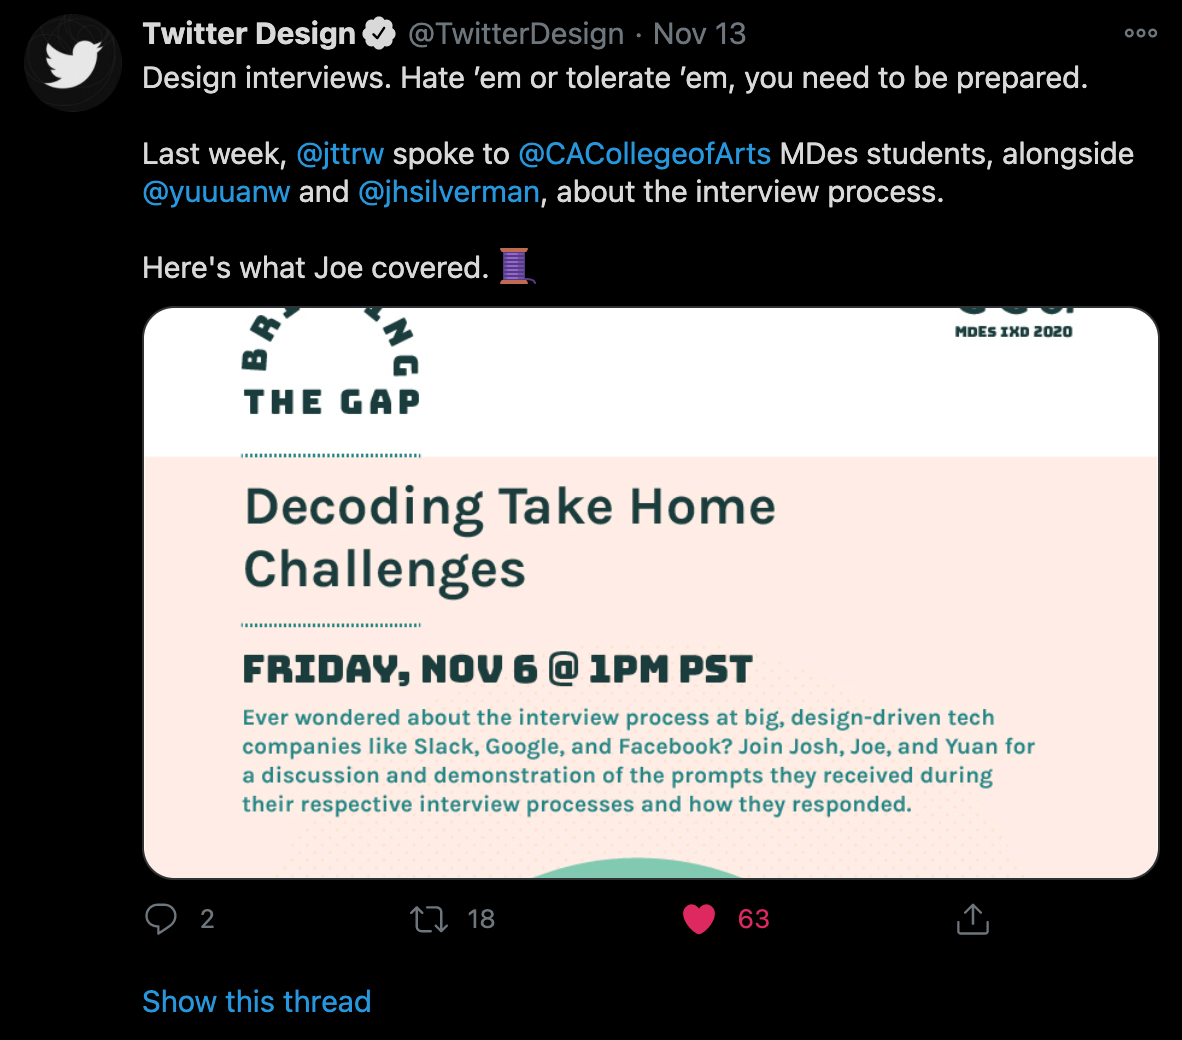 A Twitter thread about design interviews.